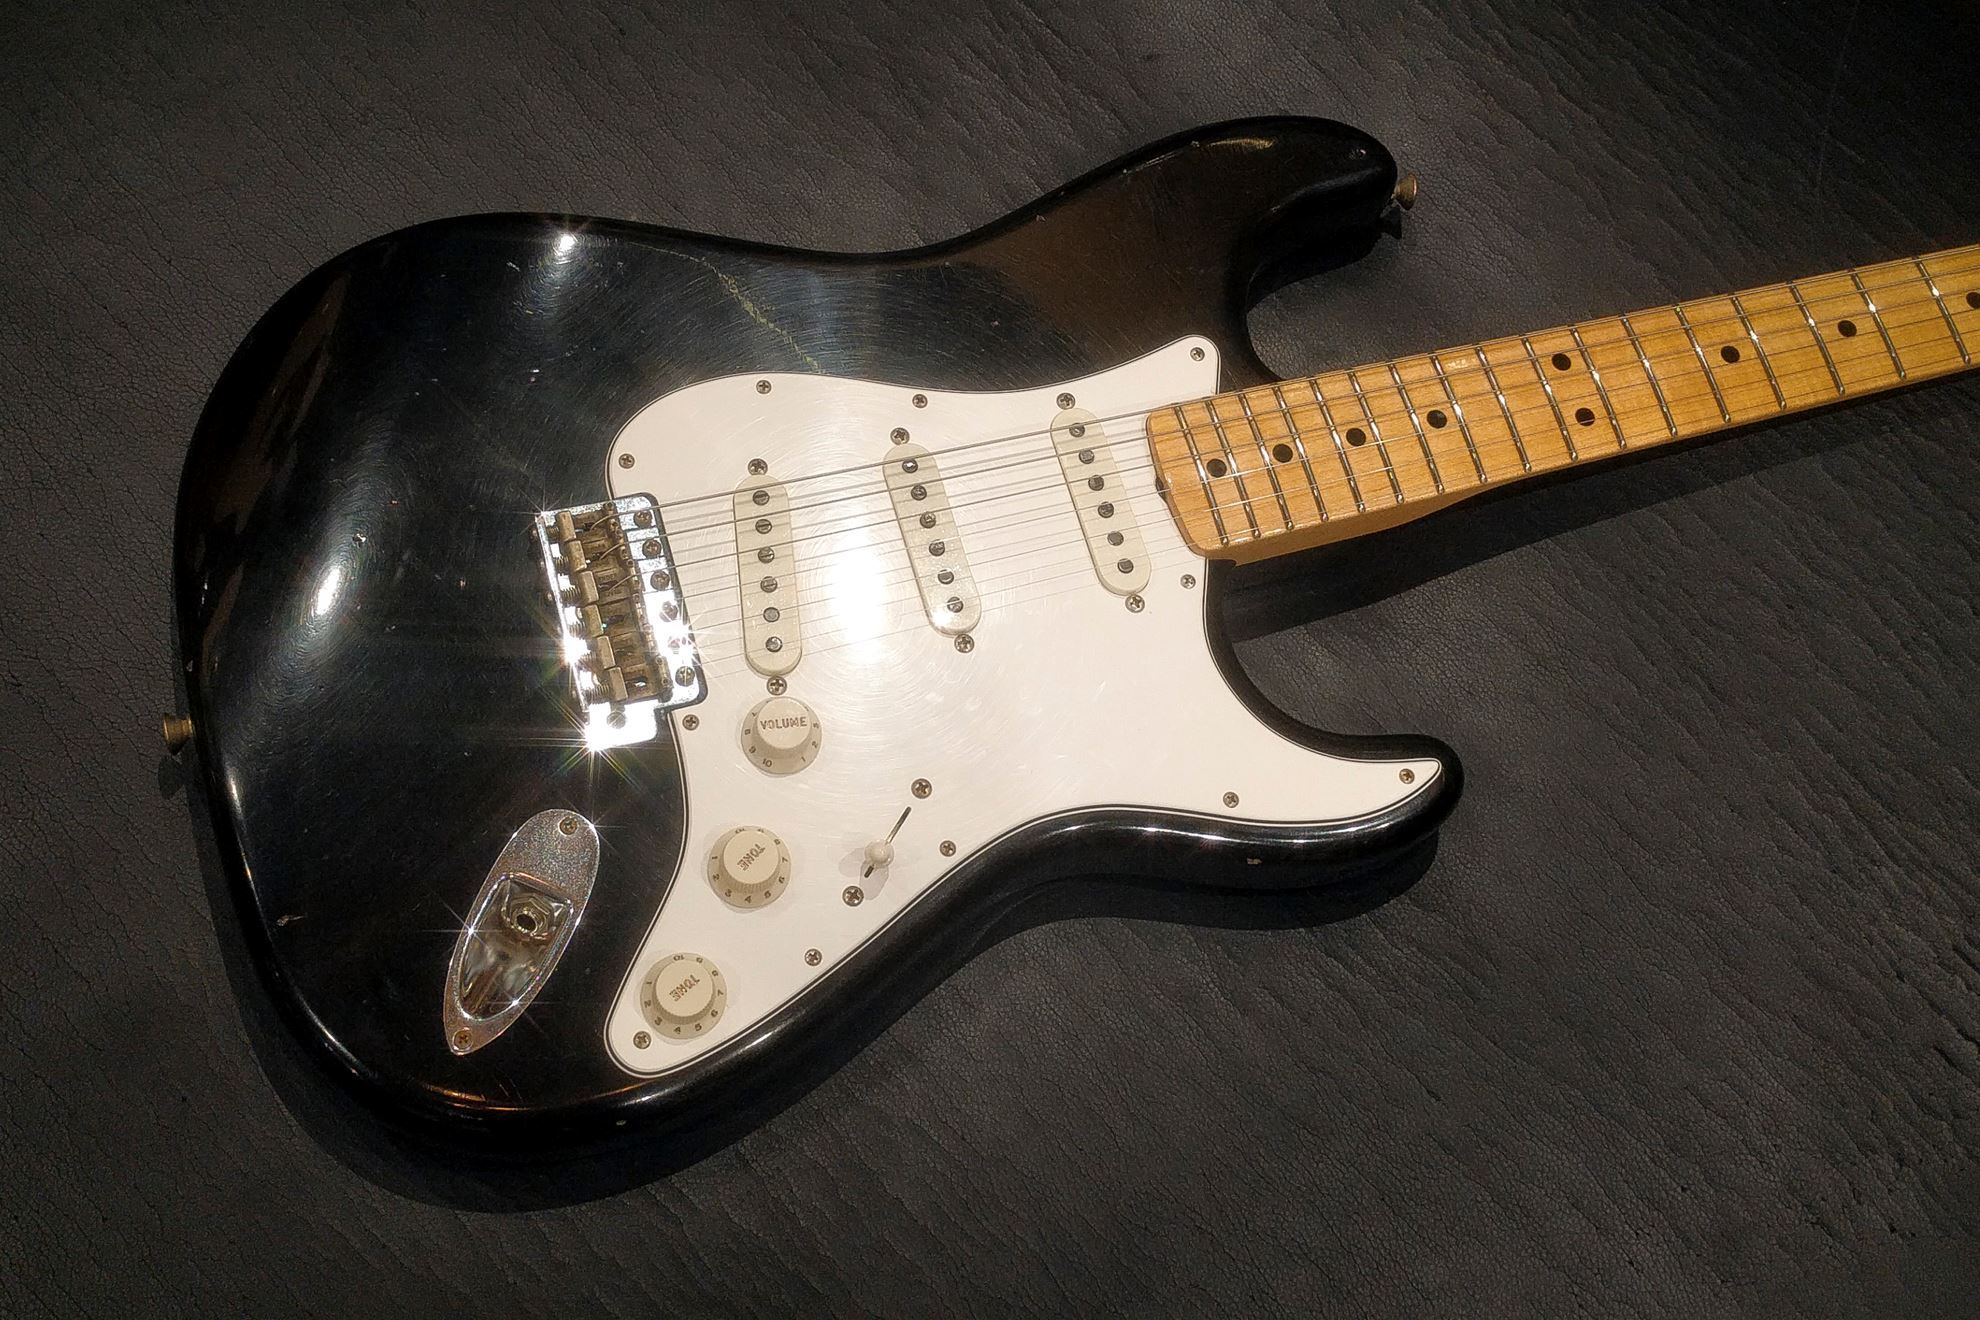 Fender Custom Shop 1969 Journeyman Relic Stratocaster Electric Guitar -  Maple Neck - Aged Black